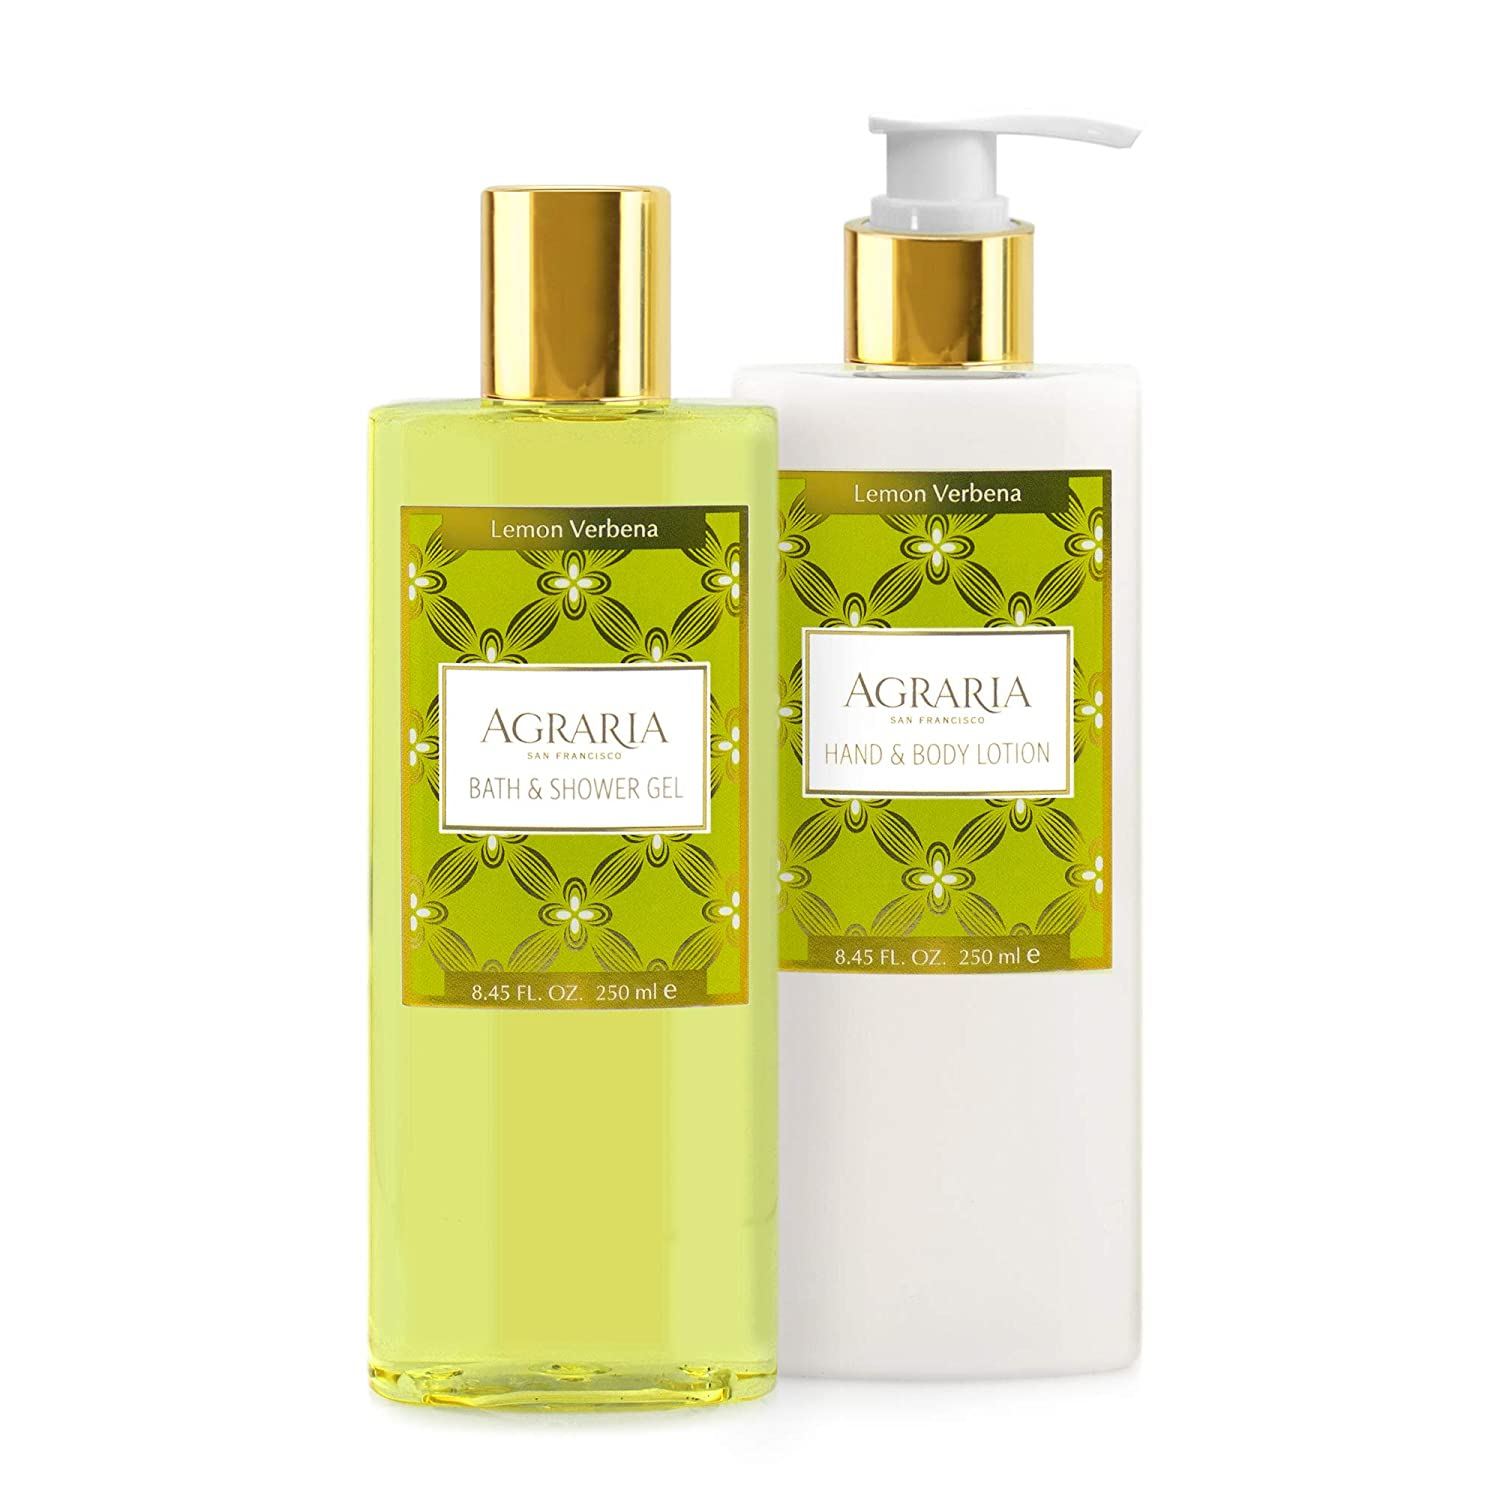 AGRARIA Lemon Verbena Luxury Body Lotion and Shower Gel Duo